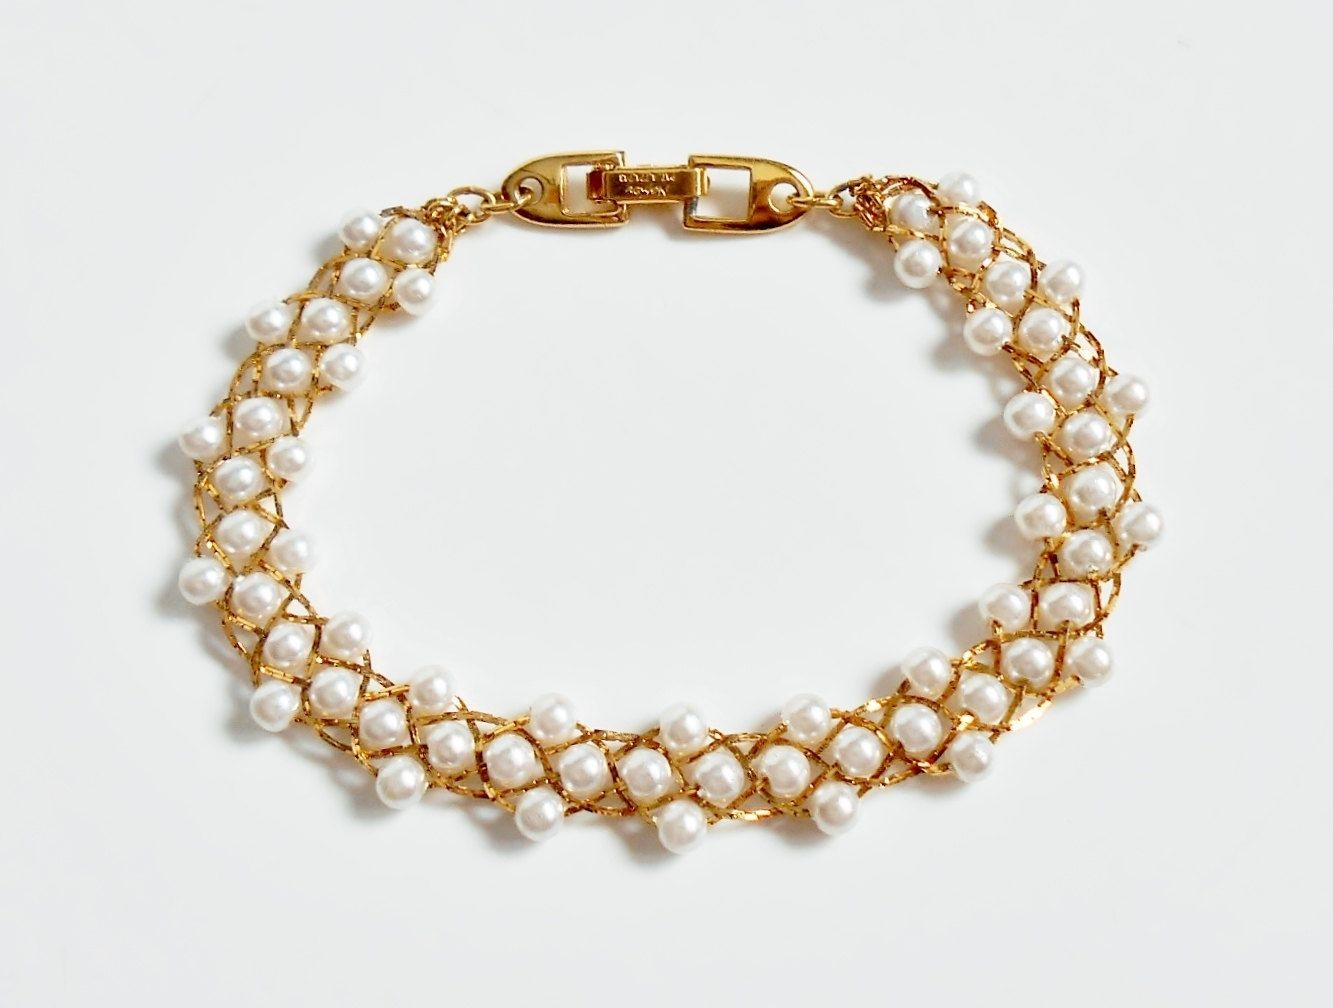 Pearl Bracelet, Vintage Napier Jewelry, Faux Pearl, Woven Gold Chain,  Beaded Pearl